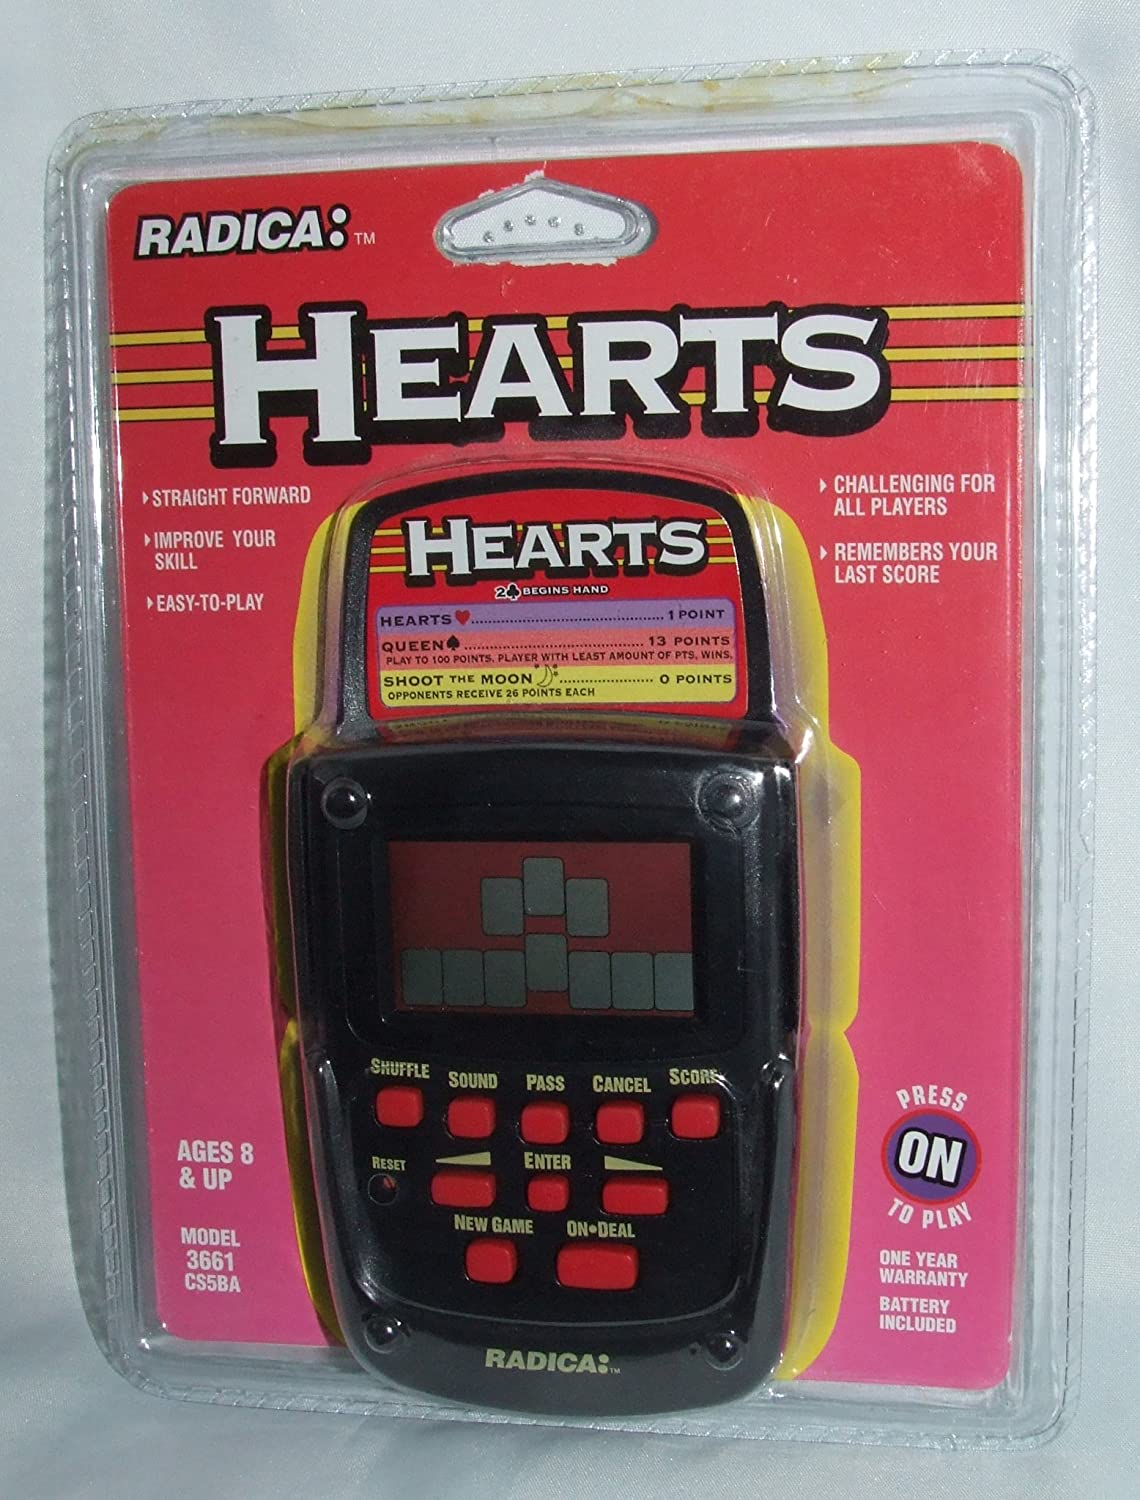 超格安価格 [Radica]Radica HEARTS Electronic Hand Held Game 4669394 [並行輸入品] B005JJL1ZK, cocoiro Gift market 7363f015